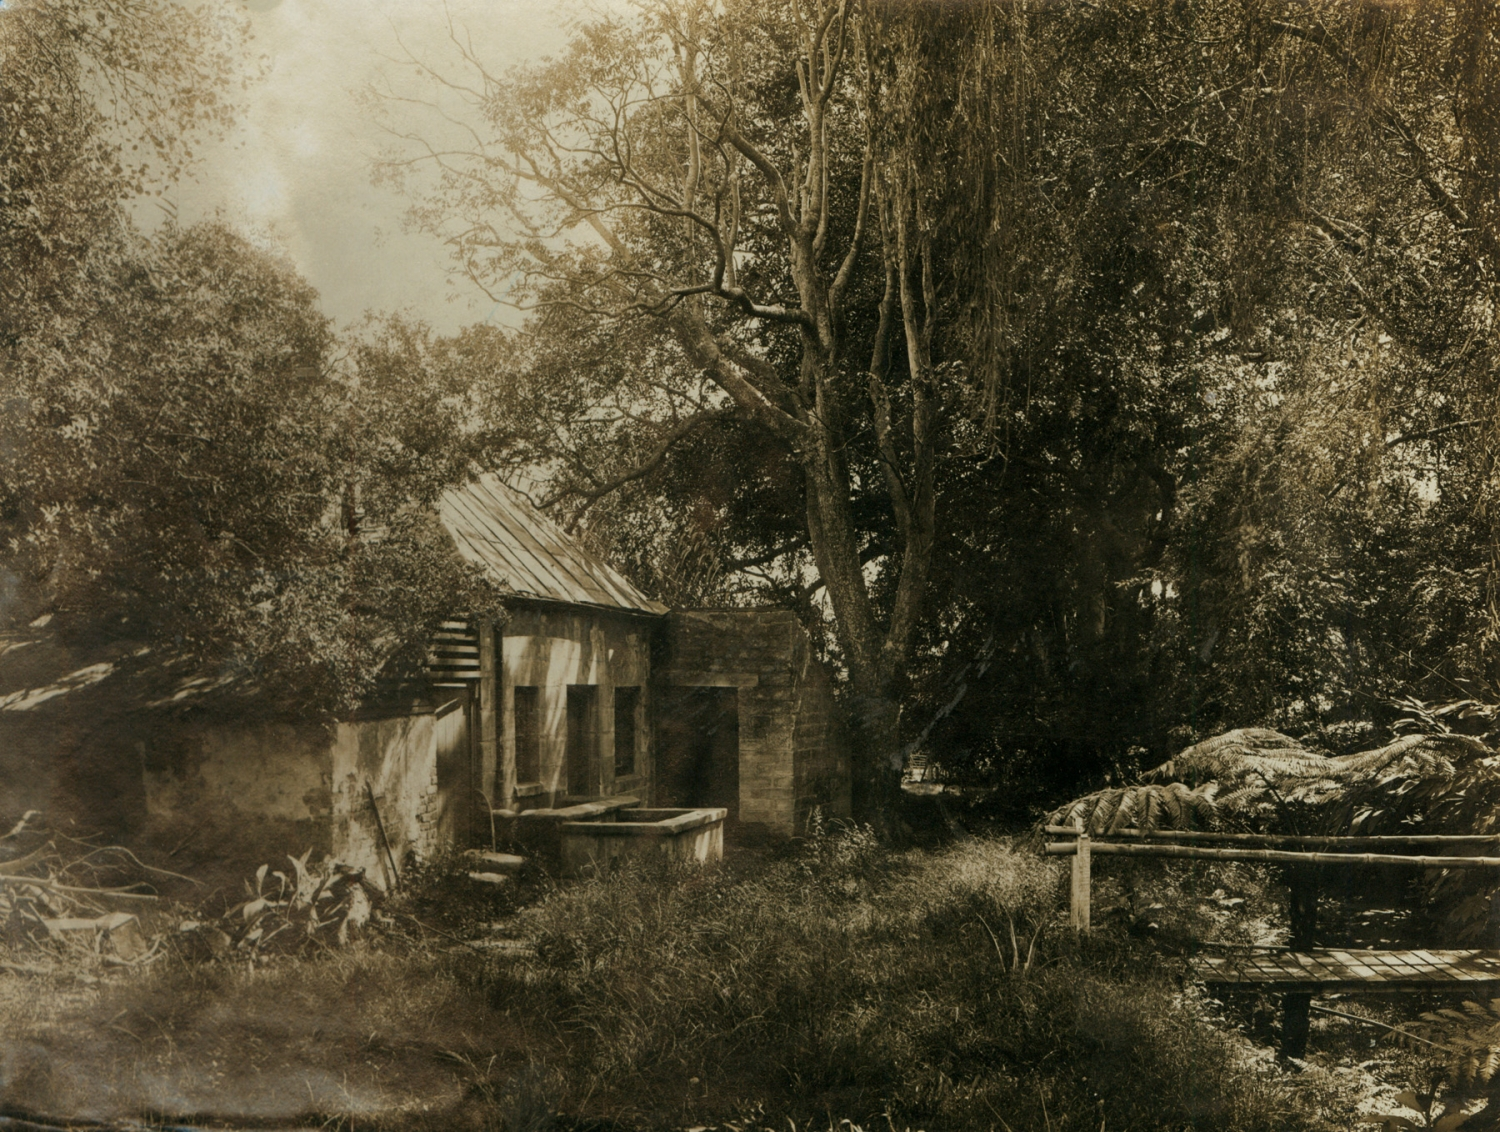 Black and white photograph of a sandstone building and encroaching trees